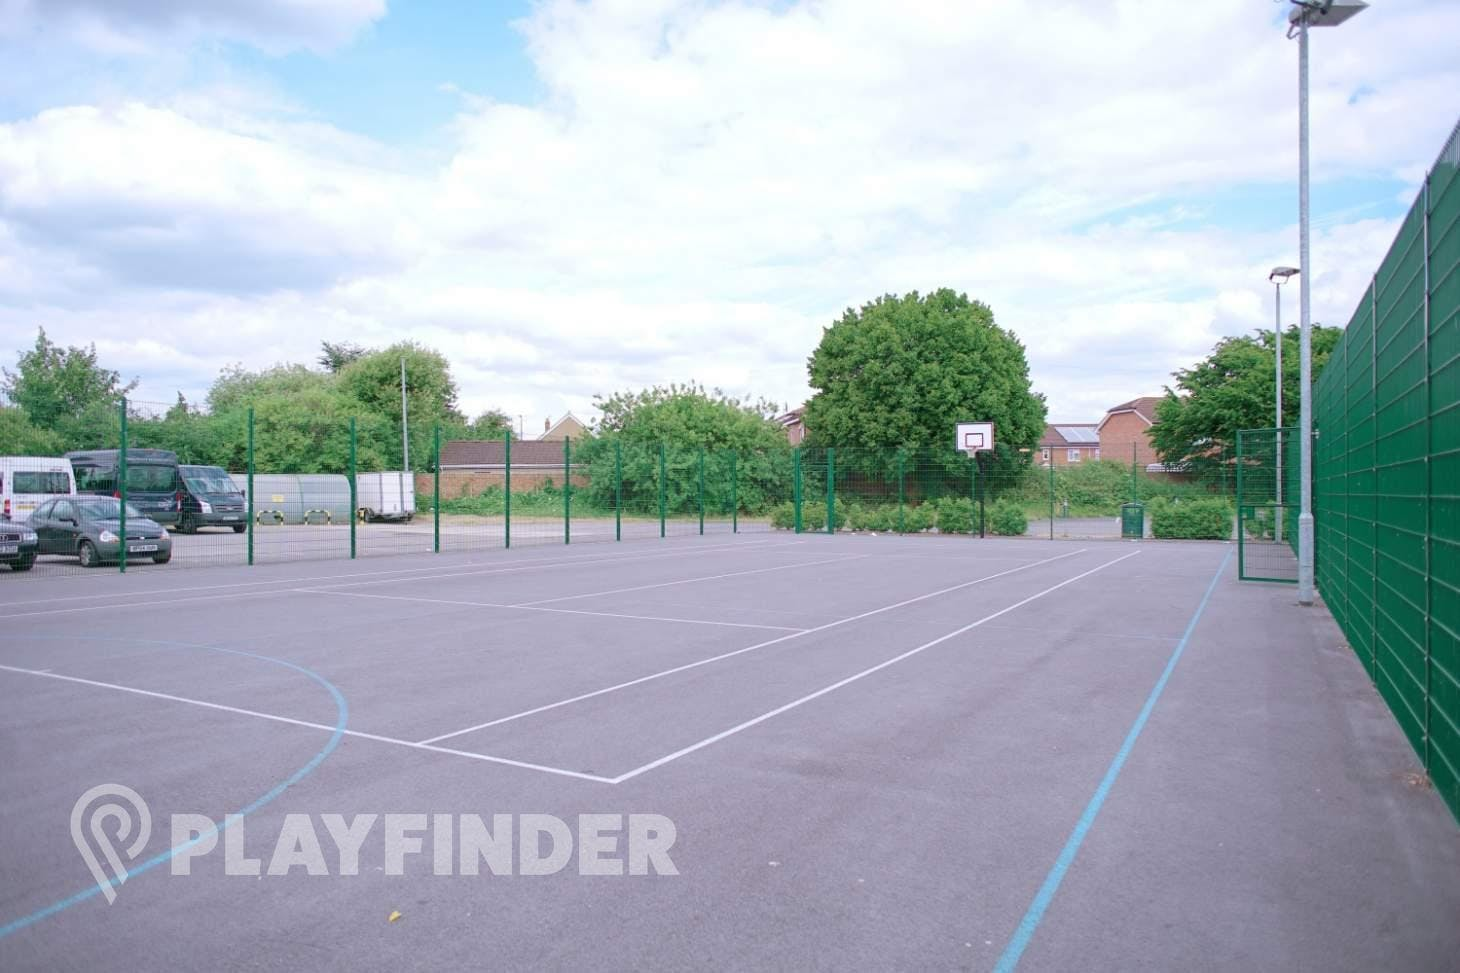 Furze Platt Leisure Centre Outdoor | Hard (macadam) basketball court